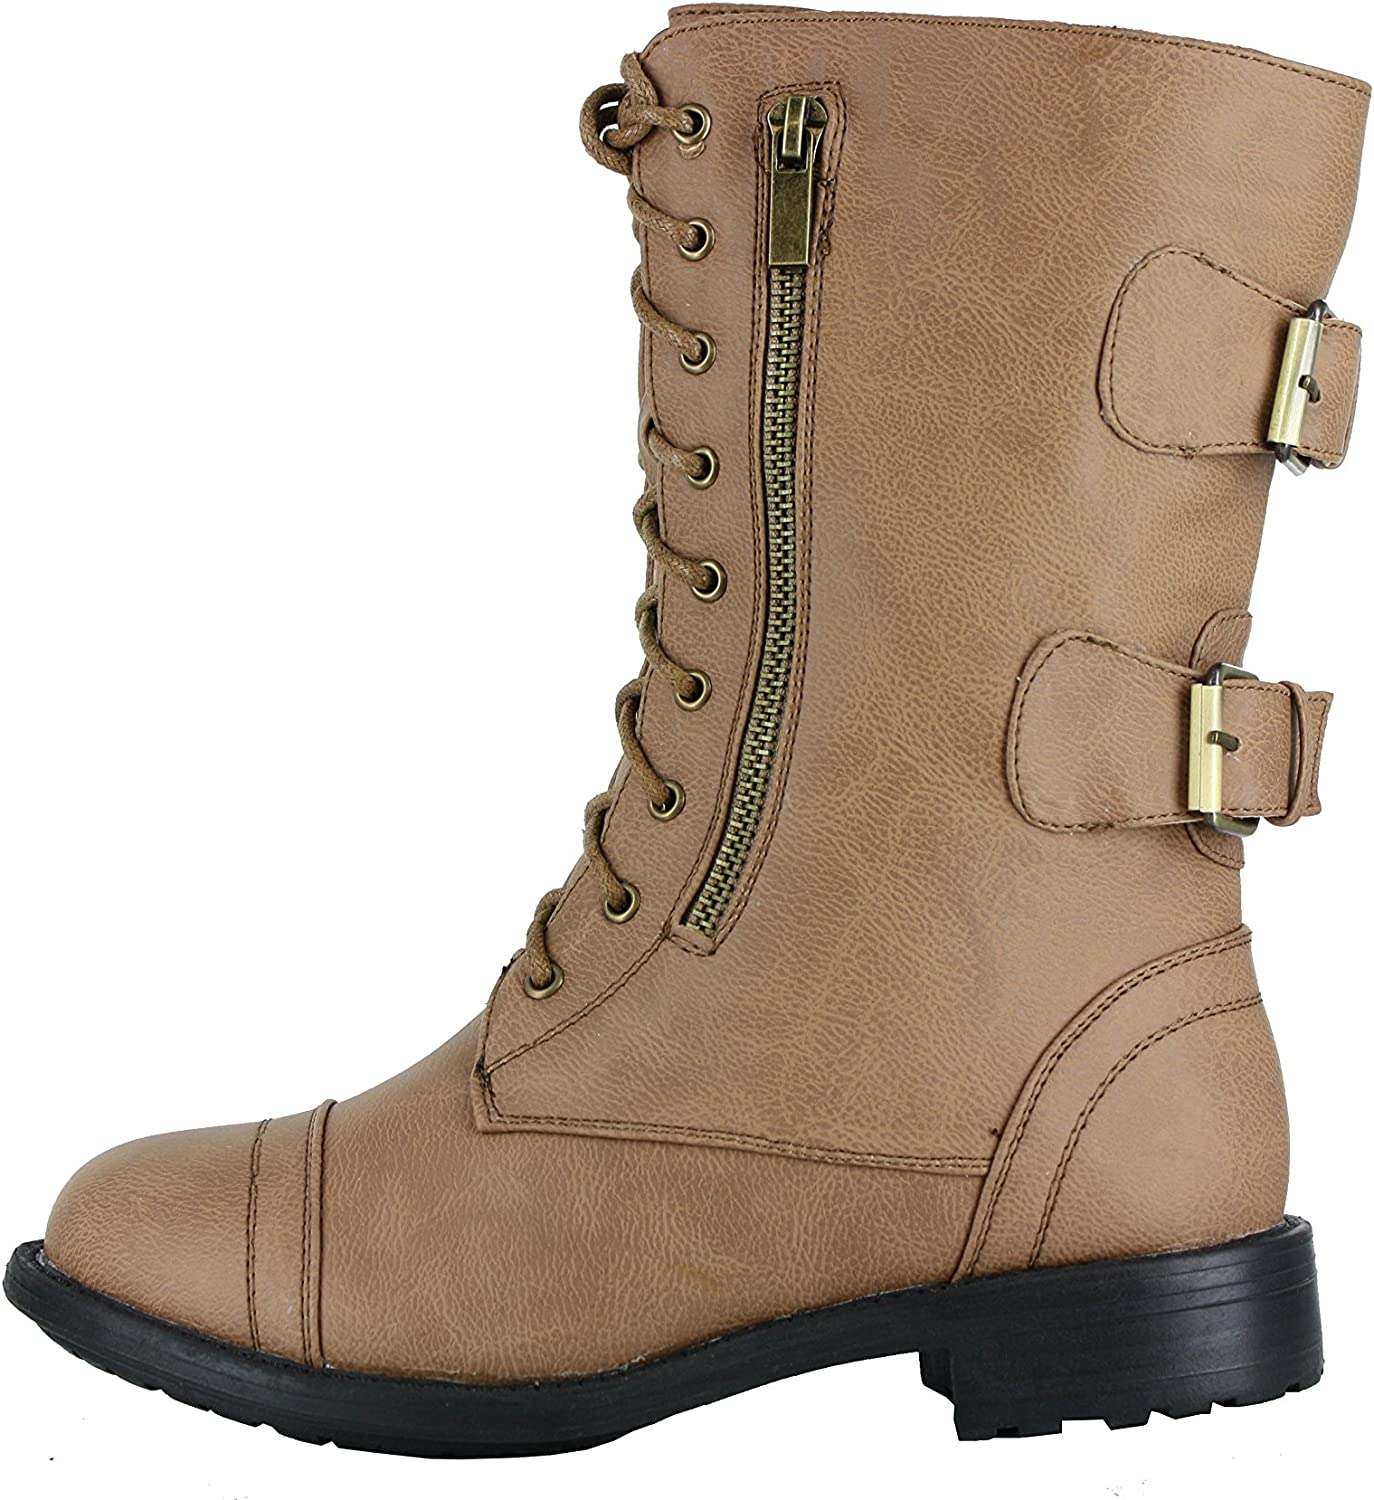 7, Taupe Top Moda Pack-72 Military Lace up Mid Calf Combat Boot